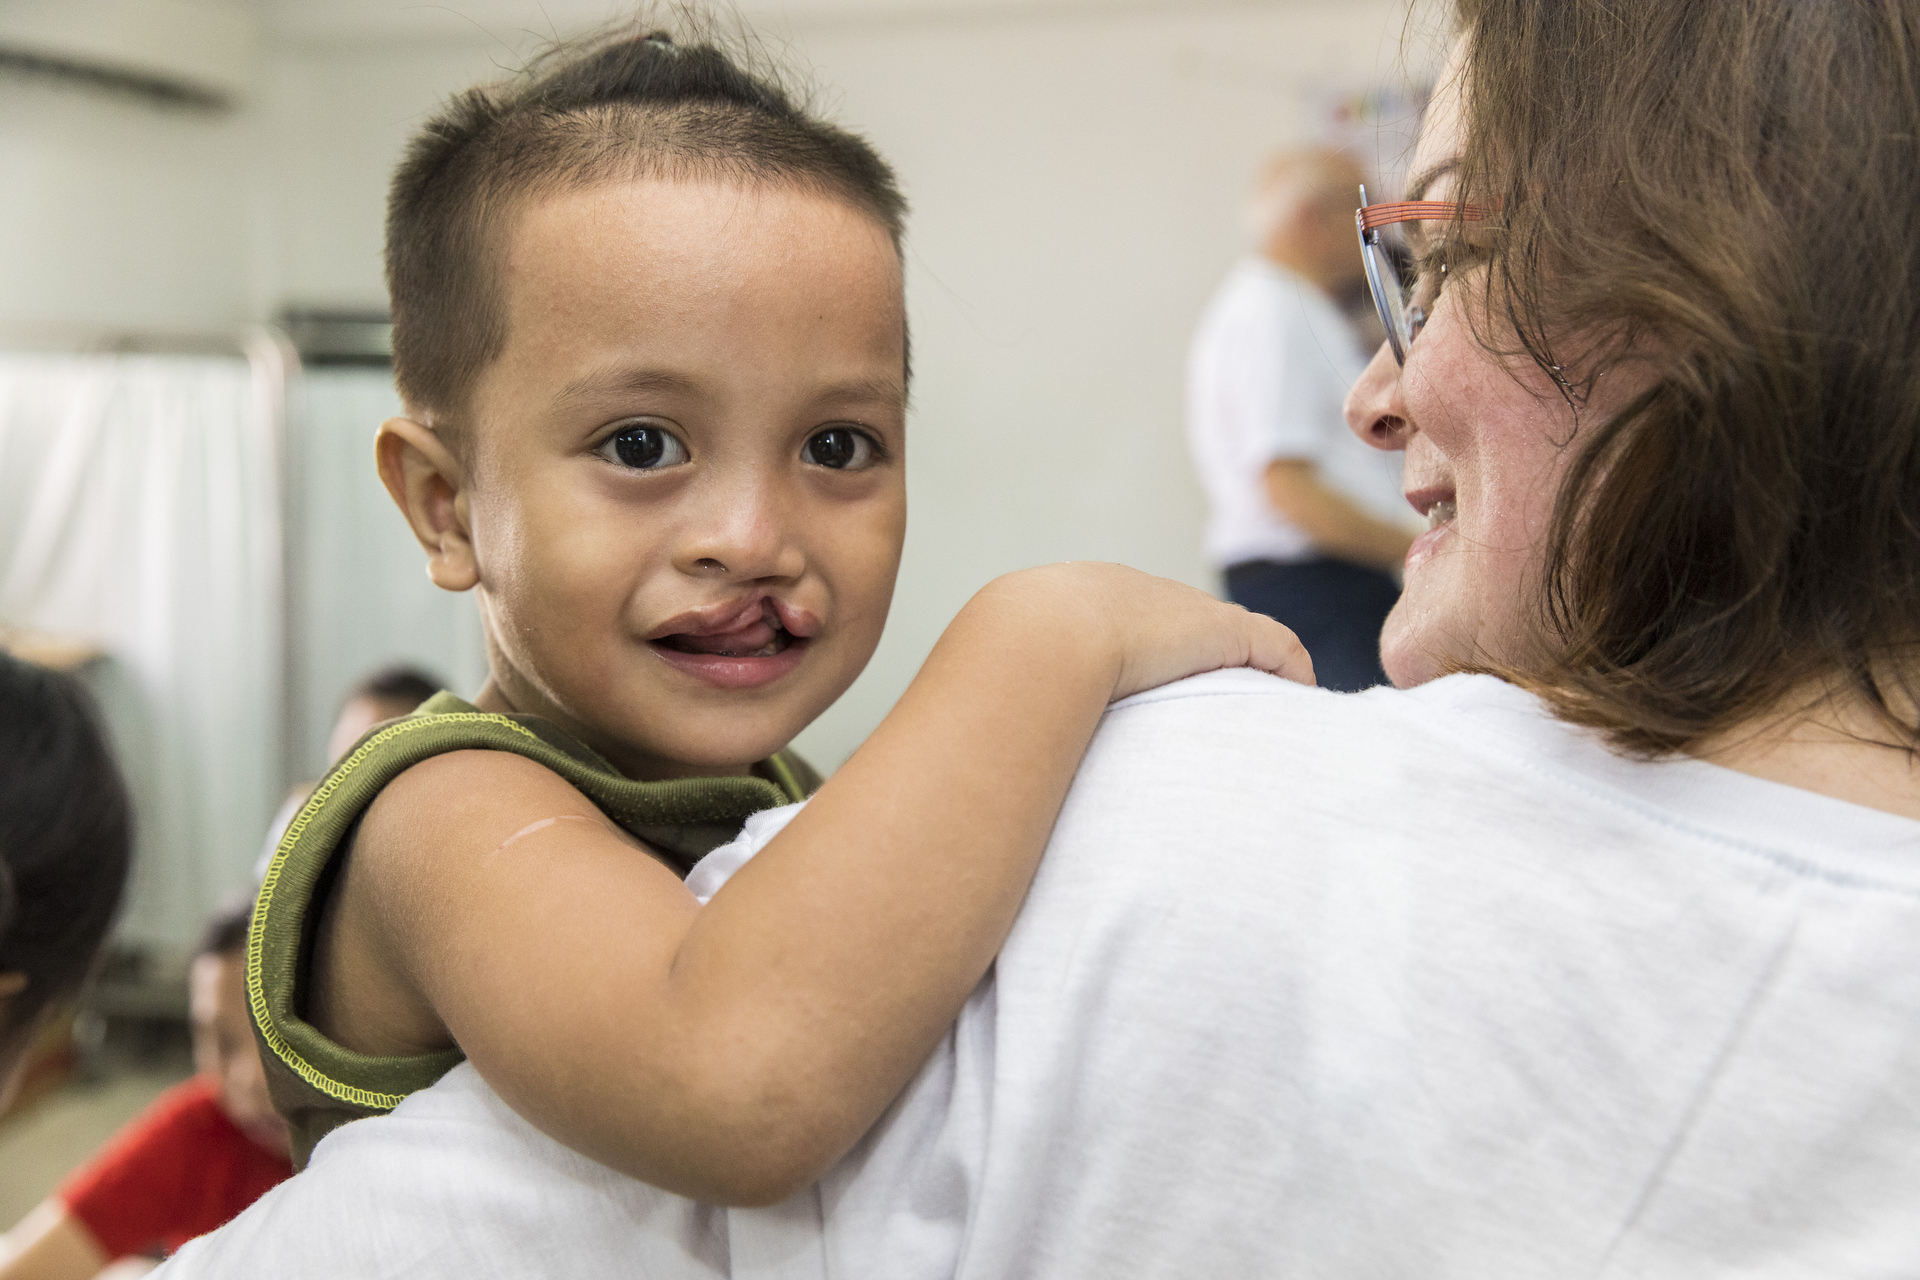 Sydney humanitarian photography, charity, Operation restore hope, cleft lip, cleft palate, Philippines, children, baby, plastic surgery, help, smile, Doctors, surgery